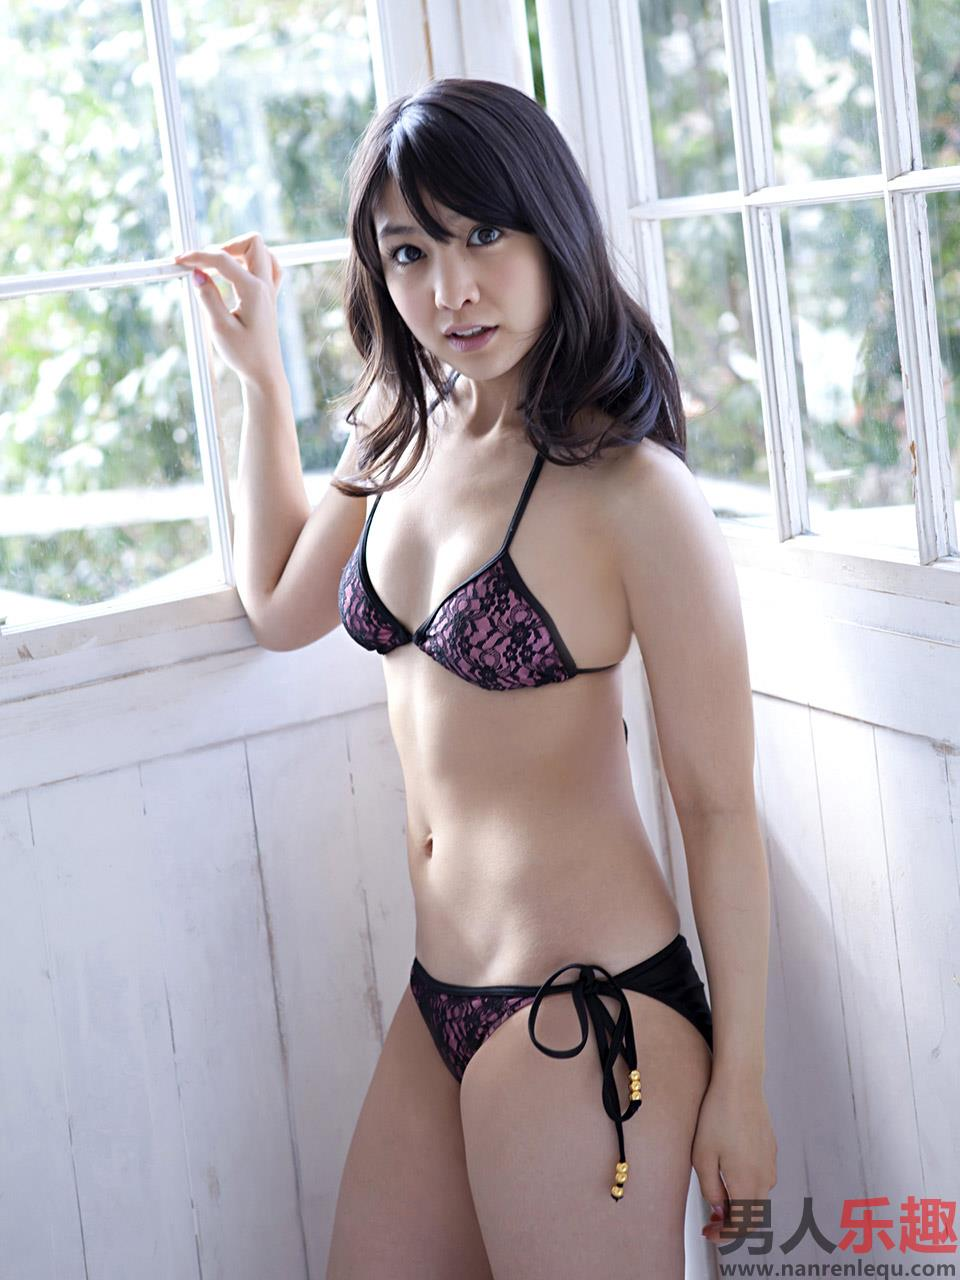 Hot Japanese AV Girls Yui Koike 小池唯 Sexy Photos Gallery  4 第5张